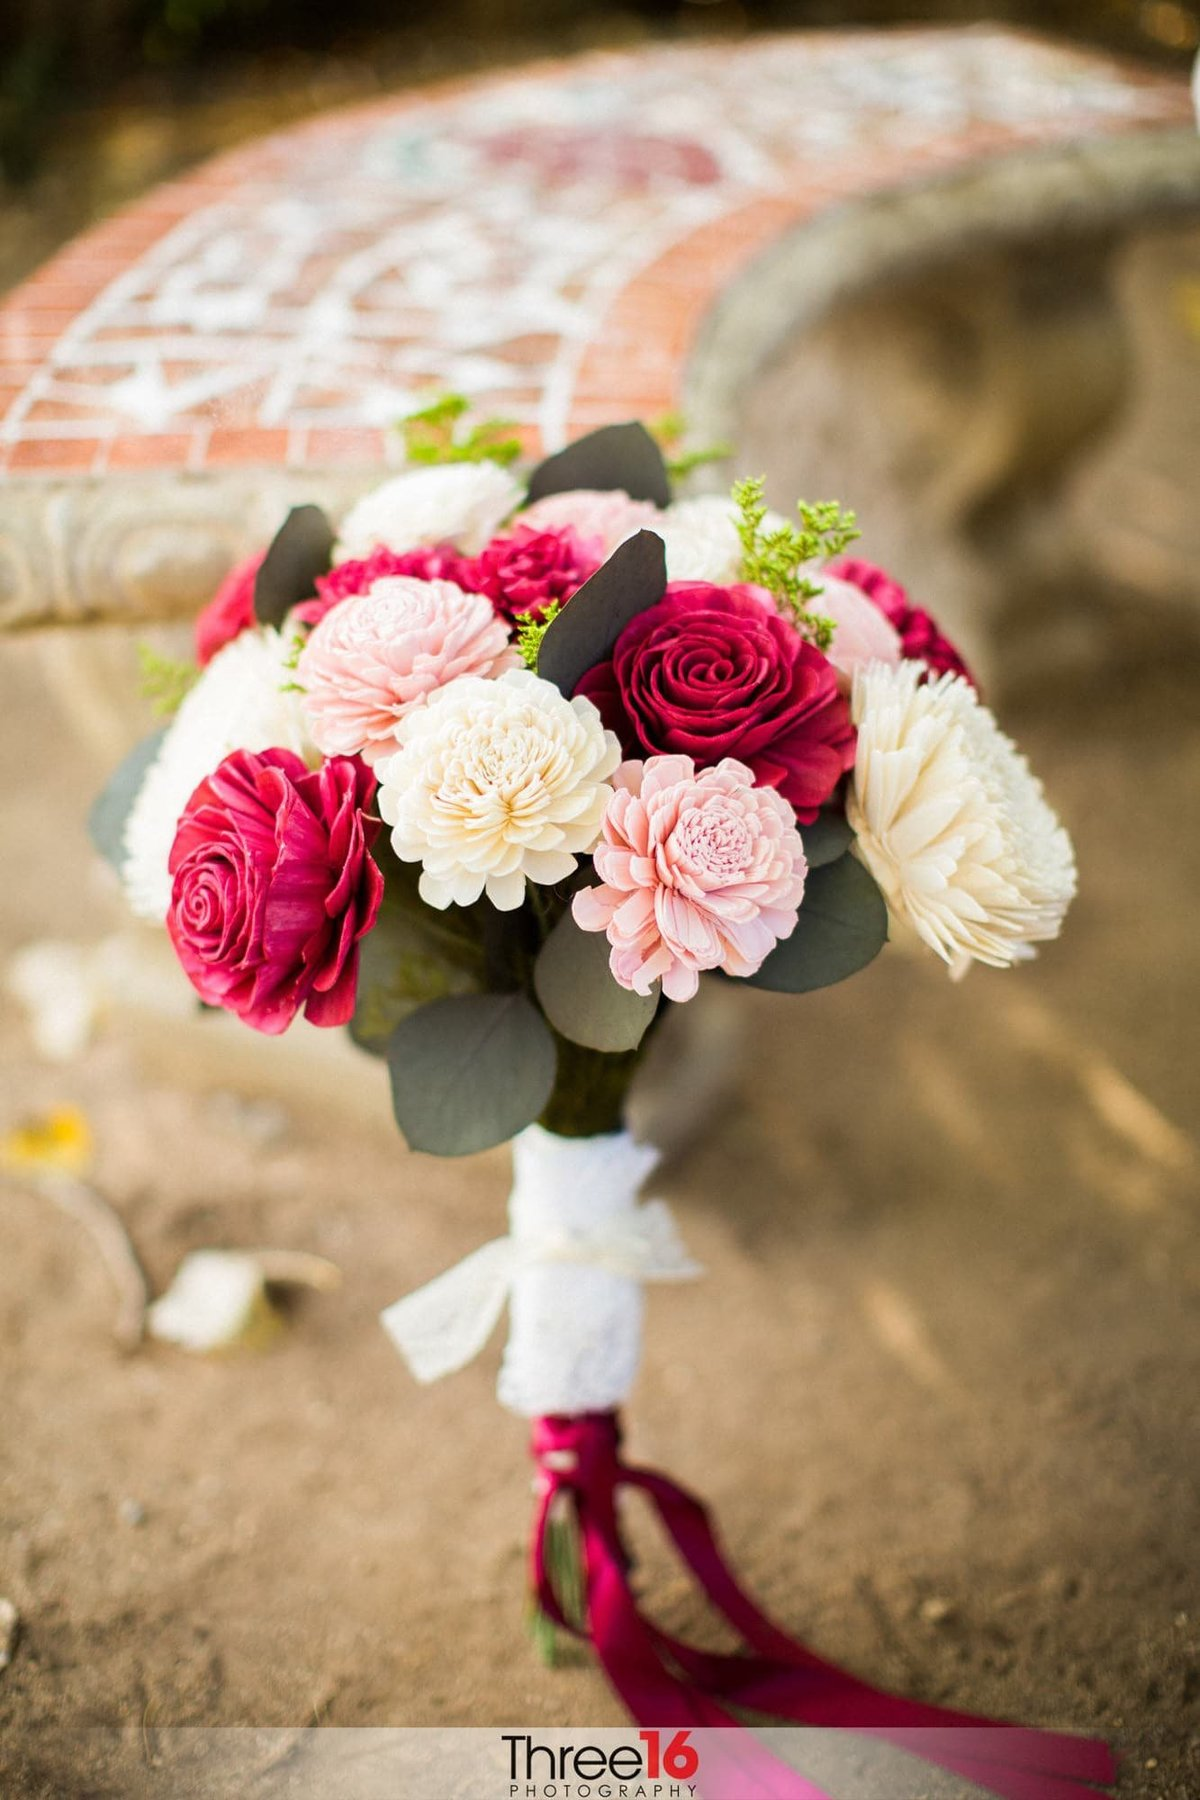 Brides beautiful bouquet of flowers